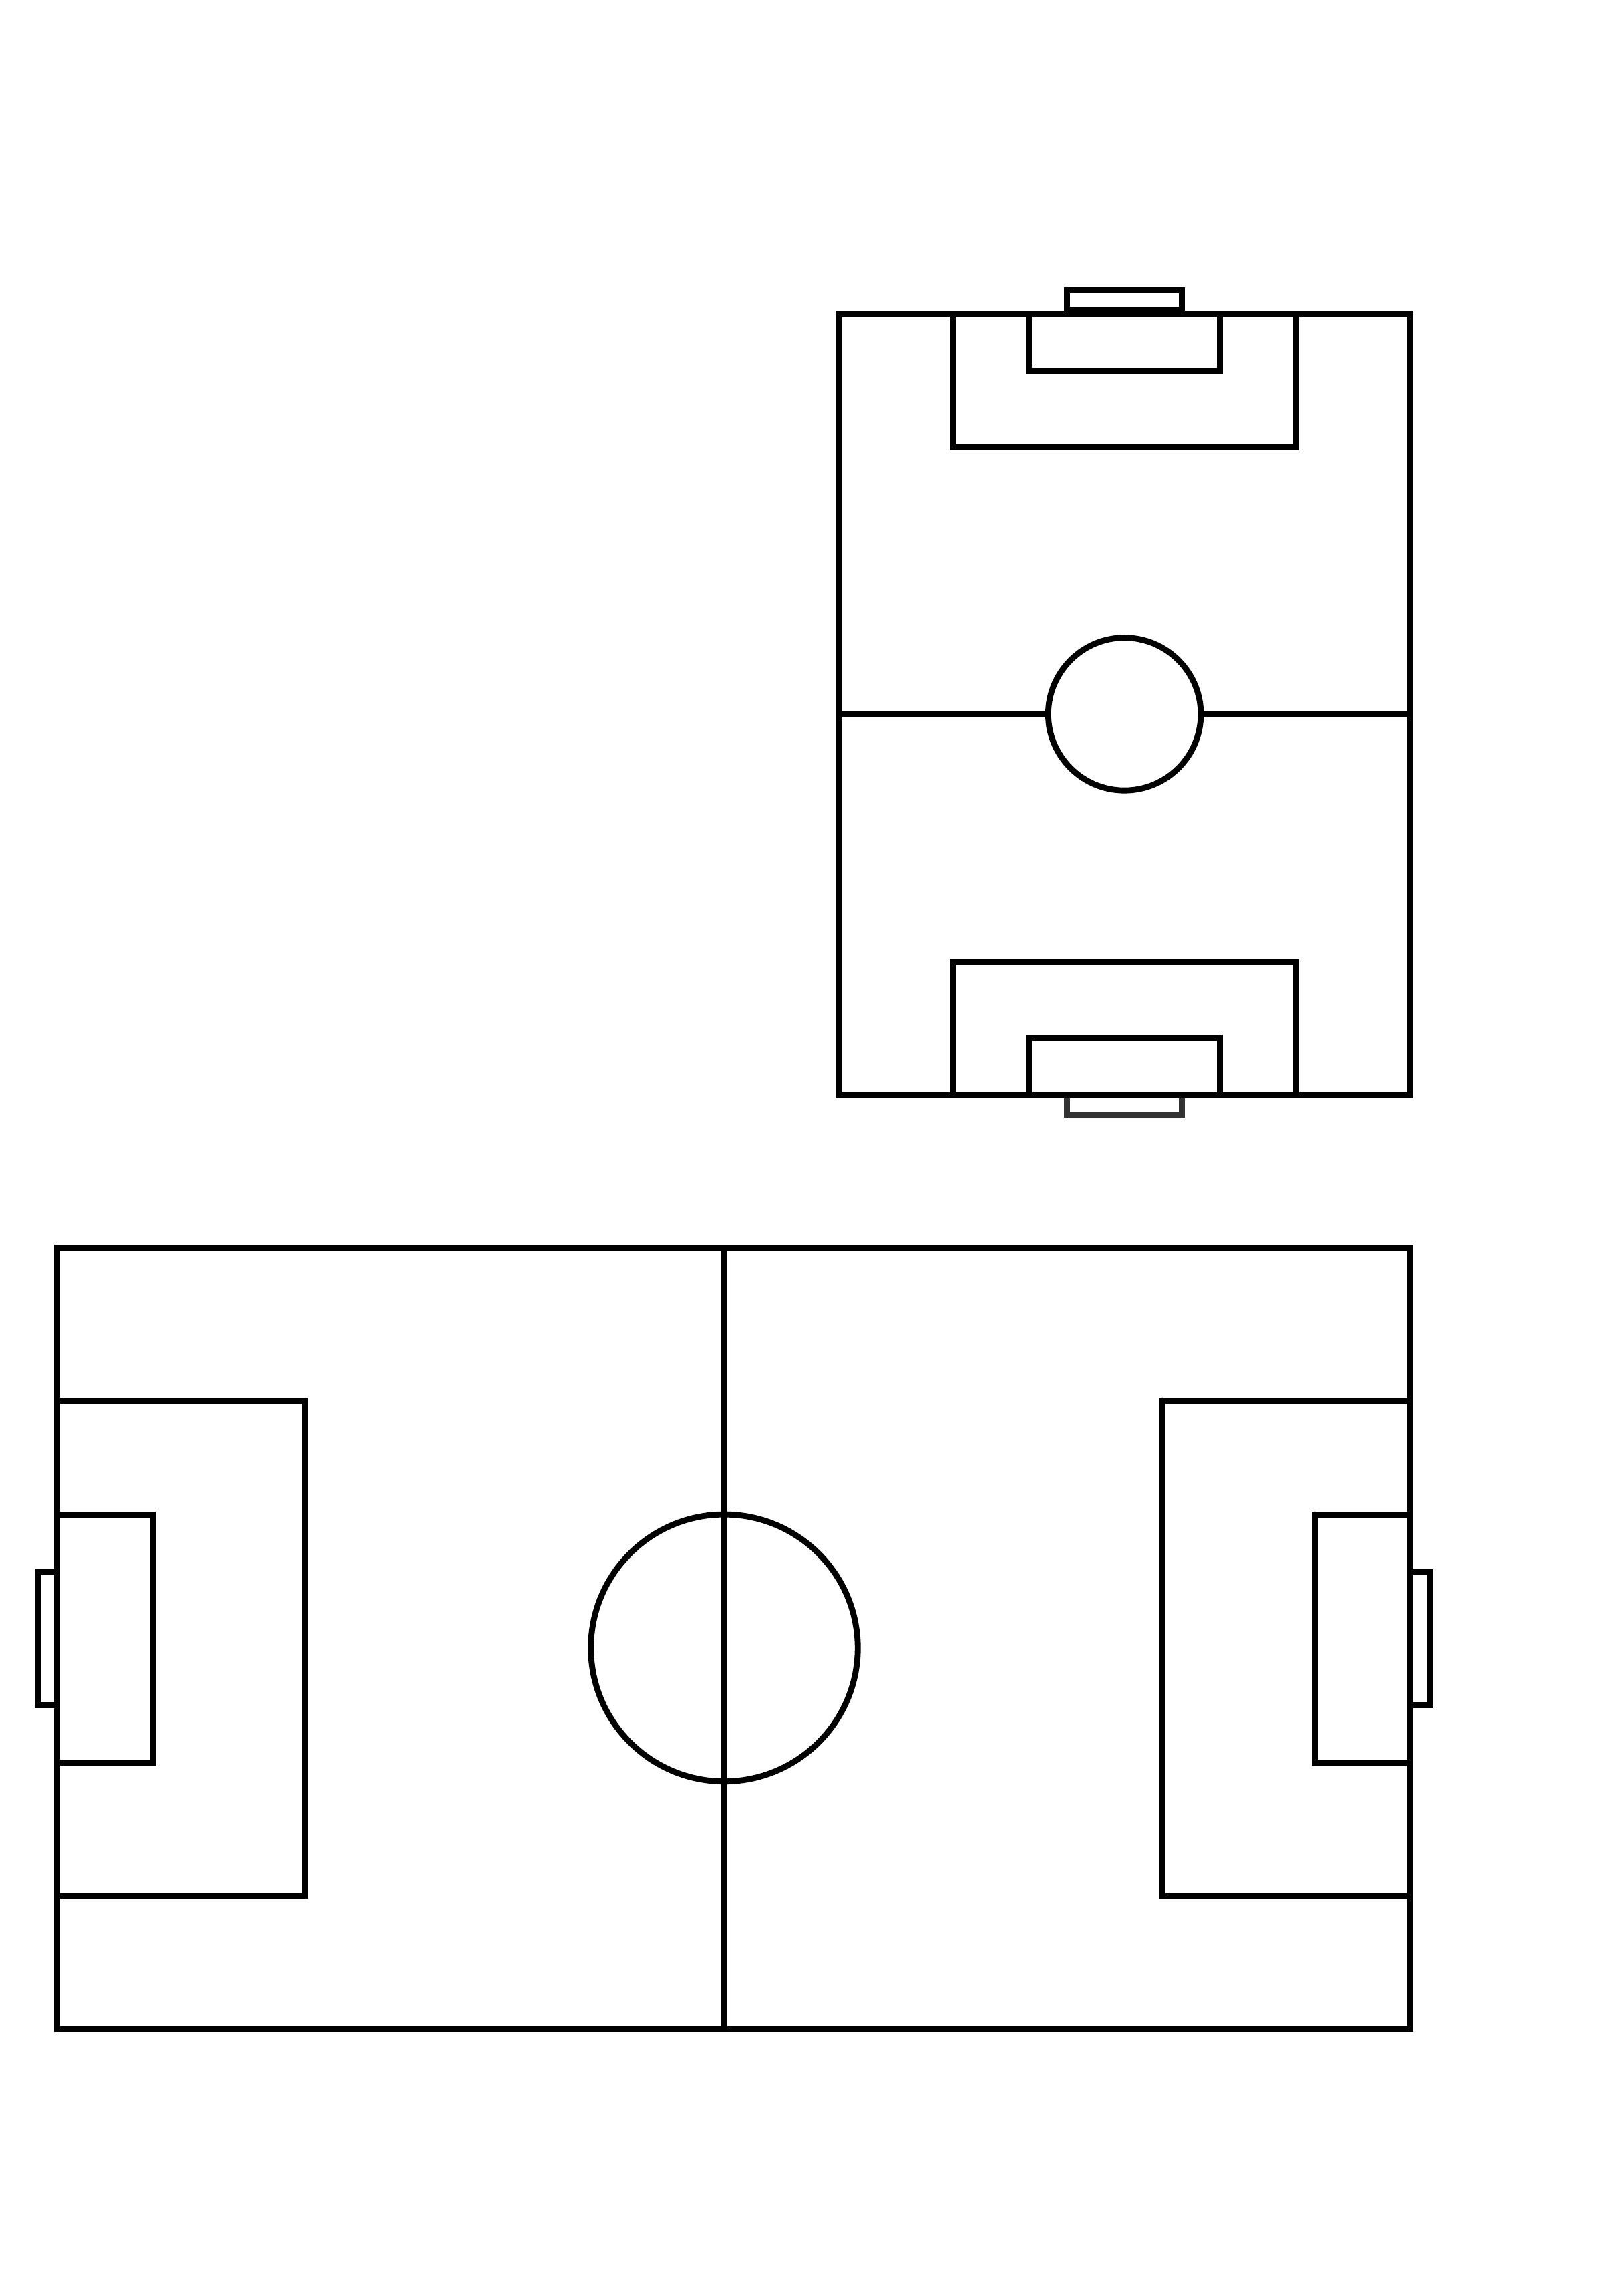 Soccer Lesson Plan Form Free Download - Soccer lesson plan template